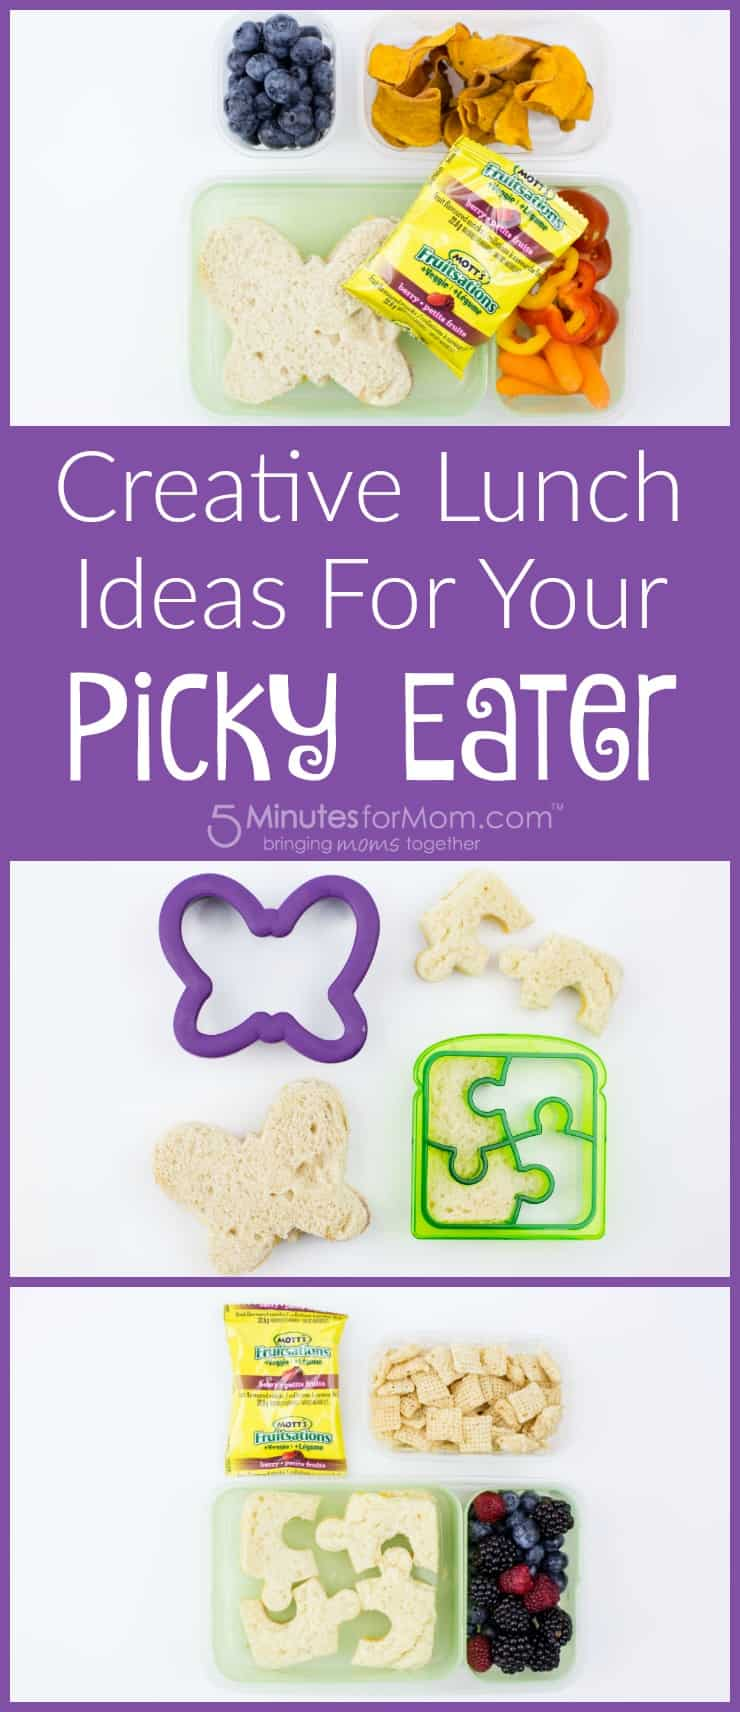 Creative Lunch Ideas for your Picky Eater